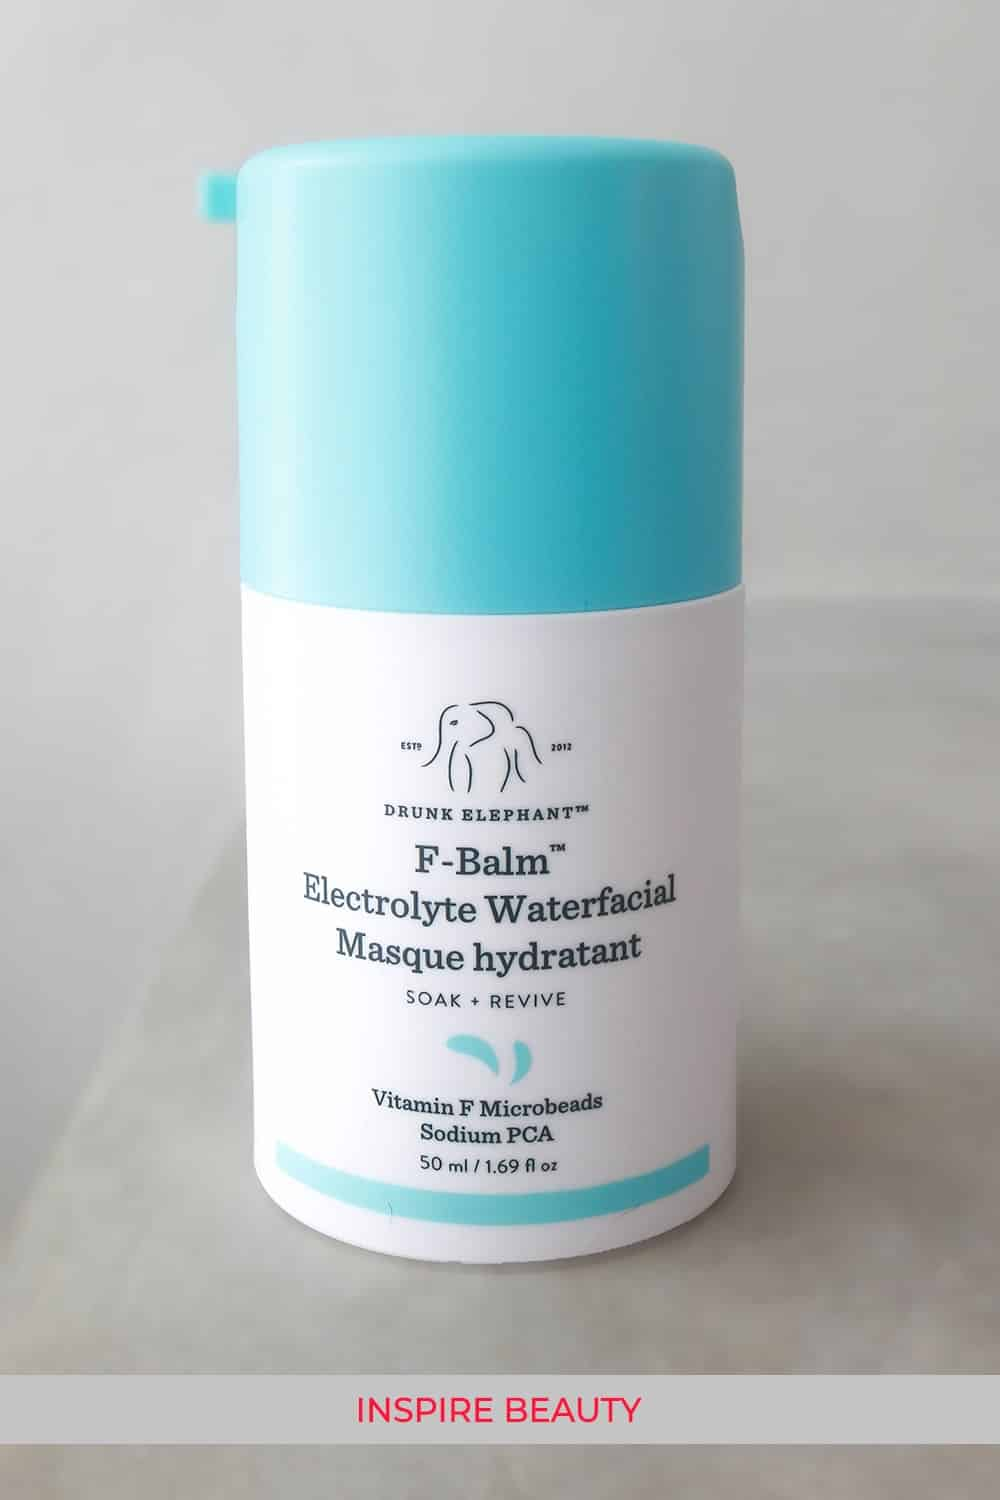 Drunk Elephant F-Balm Electrolyte Waterfacial review, this is gentle, hydrating, and works great with the TLC Framboos Night Serum